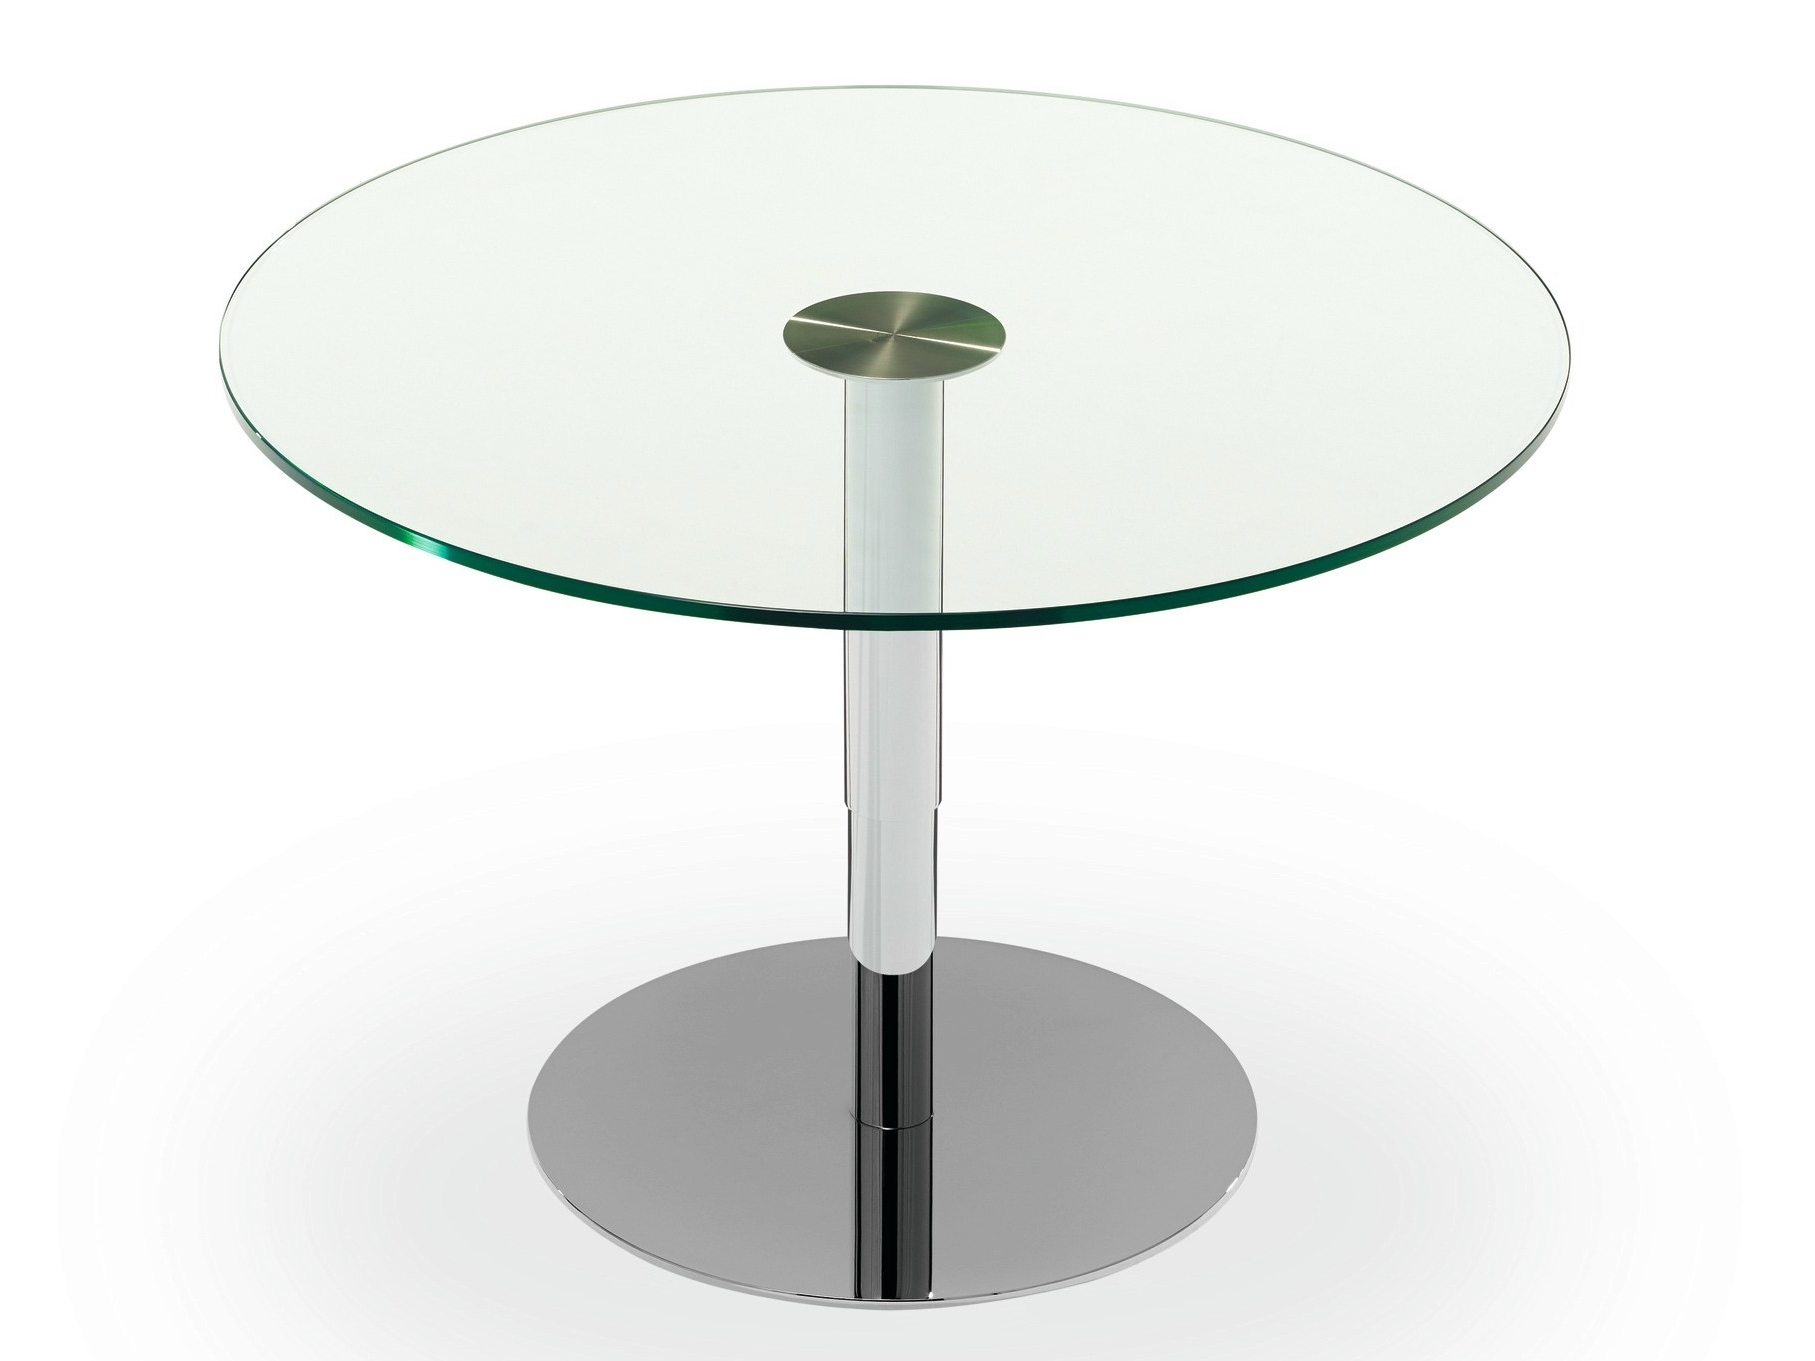 Ikea Round Glass Top Dining Tables Inside Preferred Ikea Round Glass Table Top – Glass Decorating Ideas (View 25 of 25)